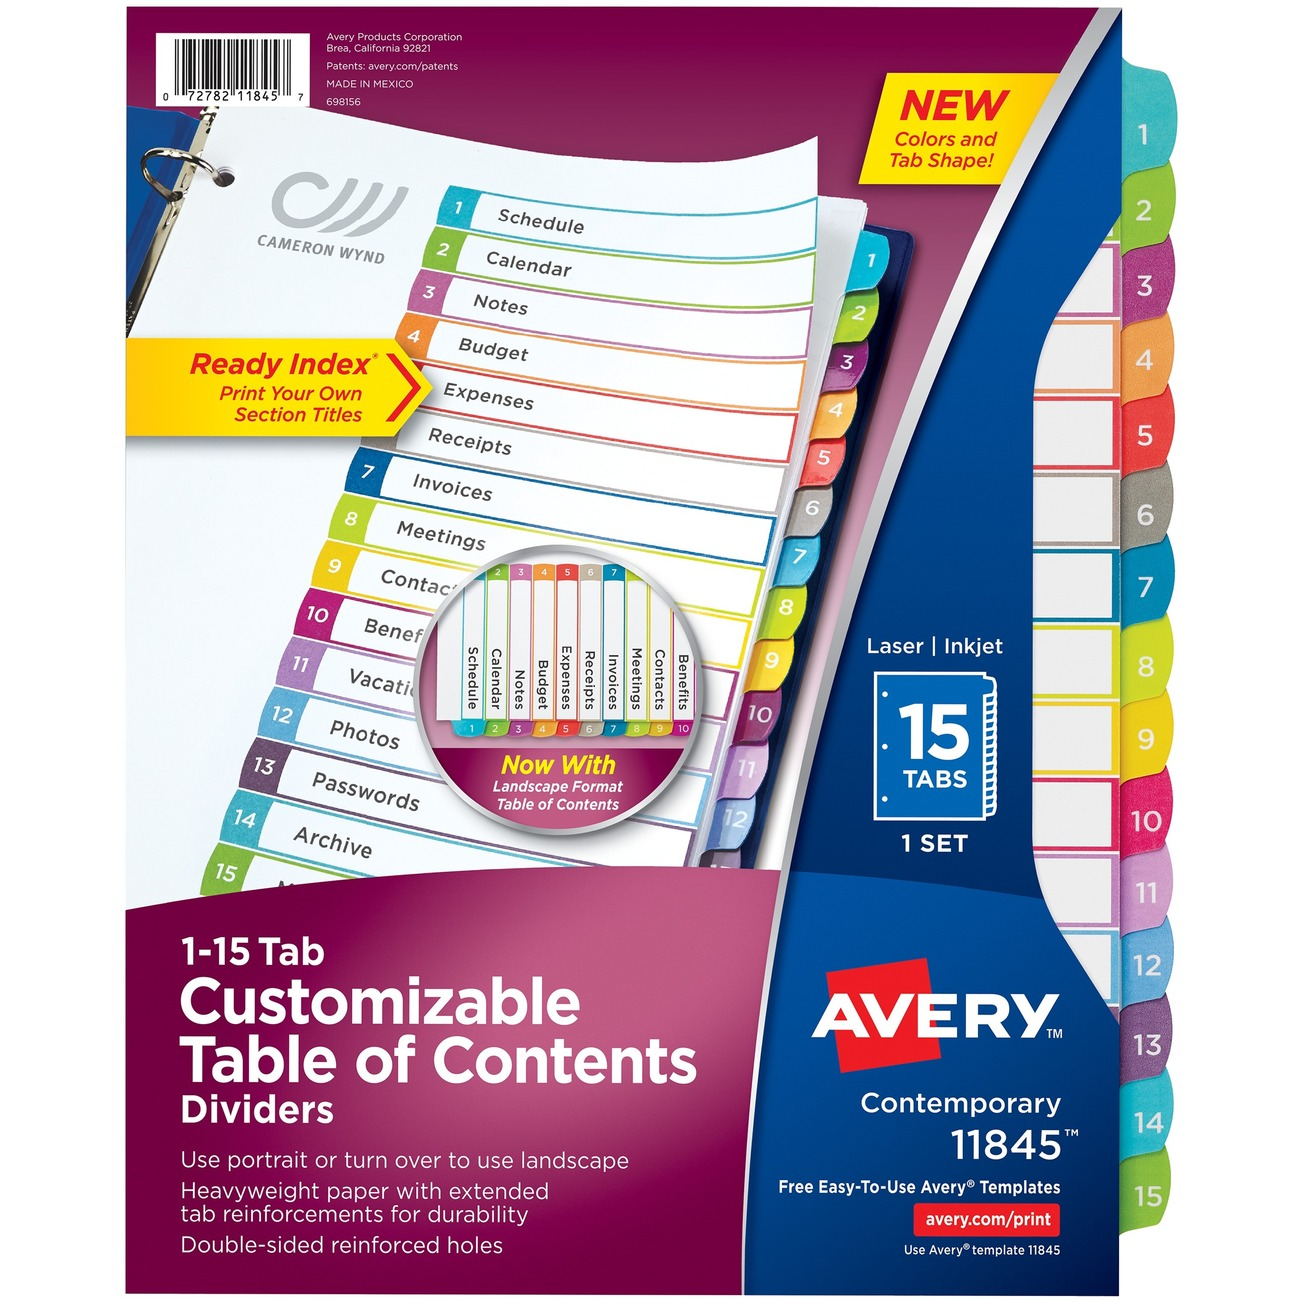 Index Divider Templates. avery big tab template business plan ...